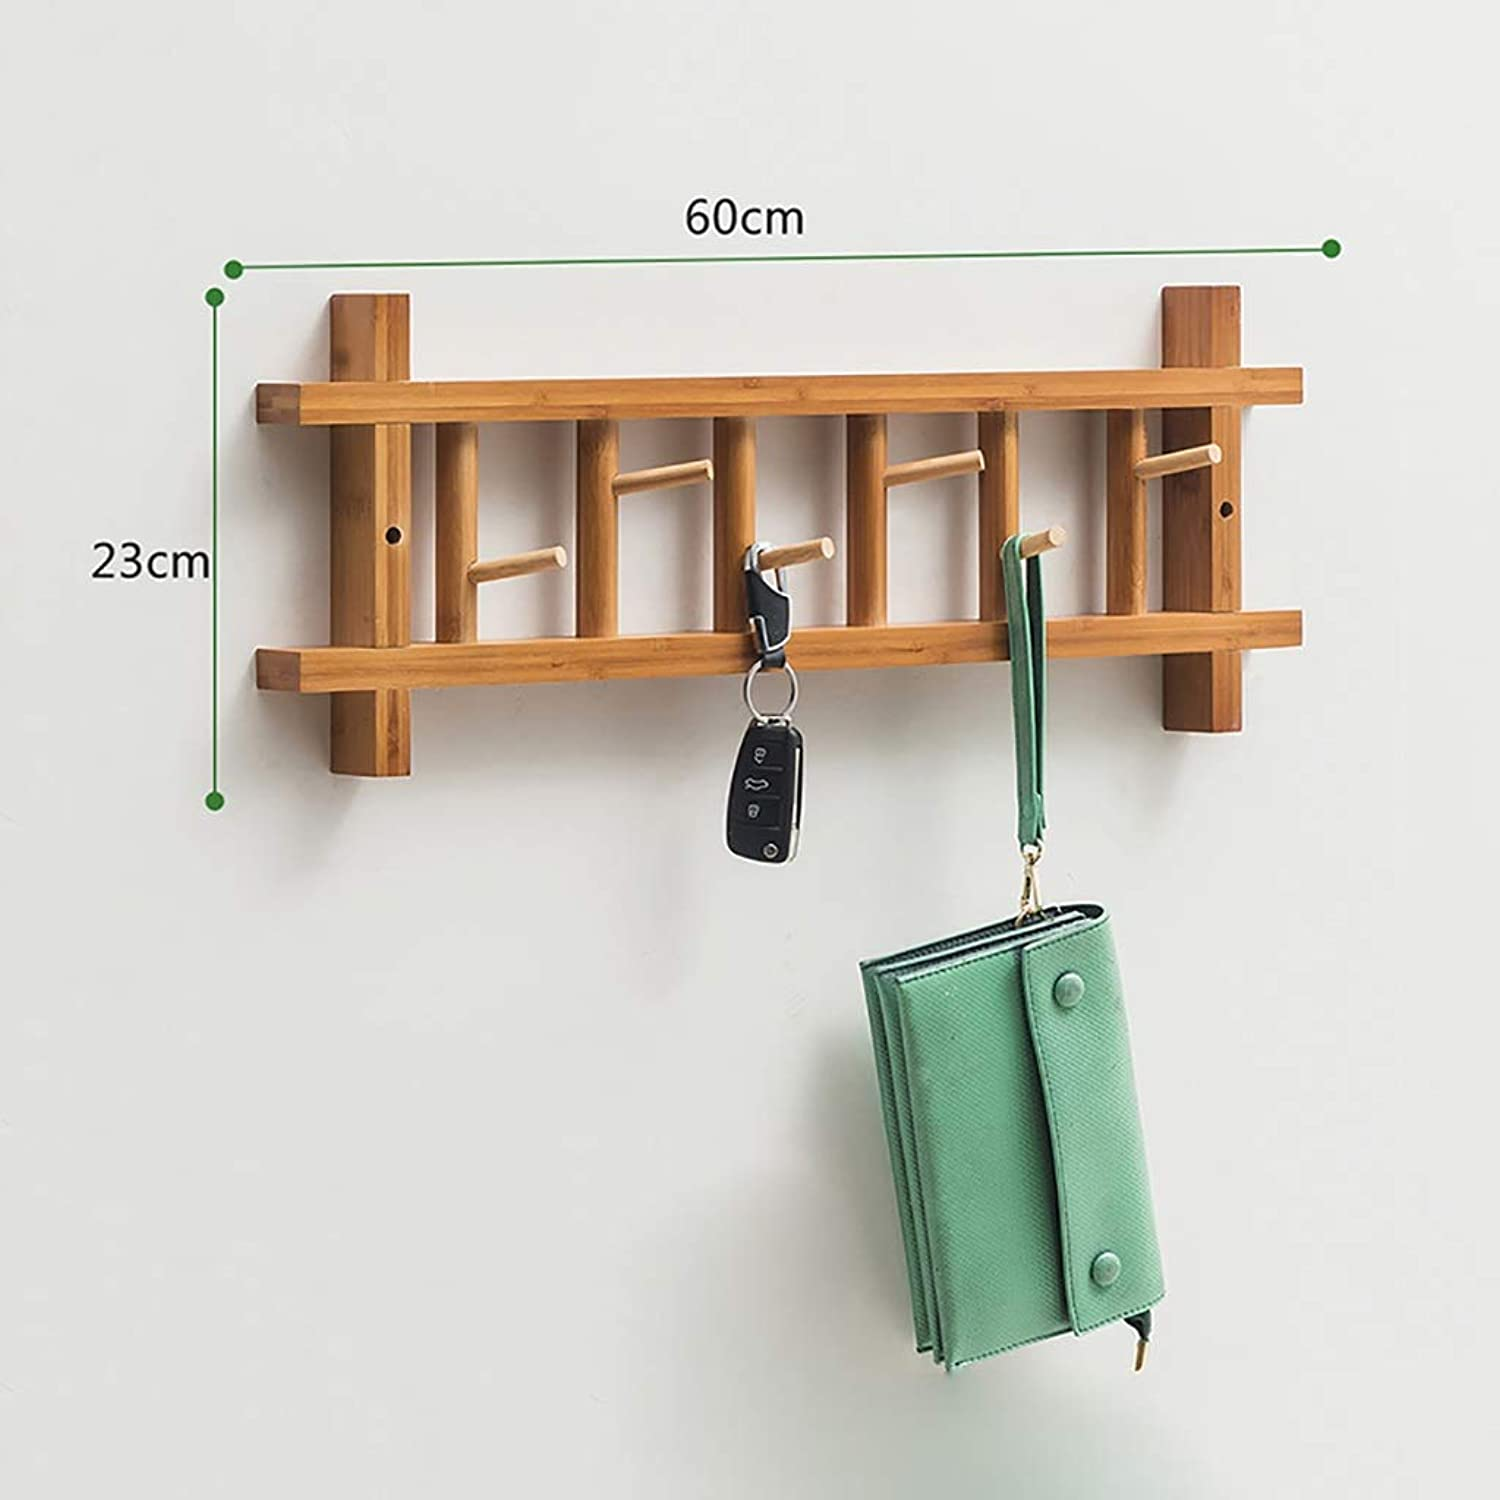 Standing Coat Racks Hanger Bamboo Hanger Wall Hanger Hanger shoes Rack 360° redatable Hook Coat Rack (Available in Three colors) (color   B, Size   60cm)